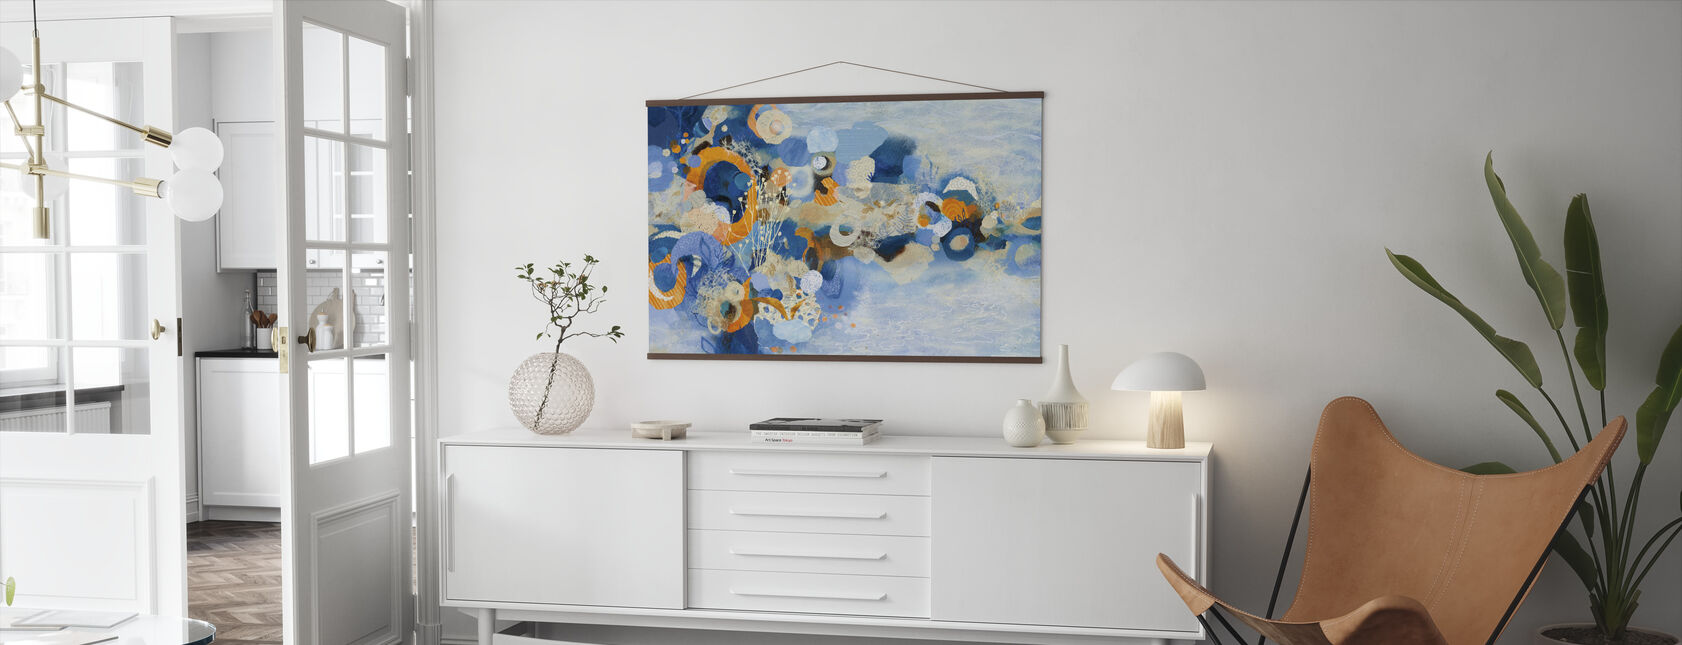 Nantucket Summer - Poster - Living Room